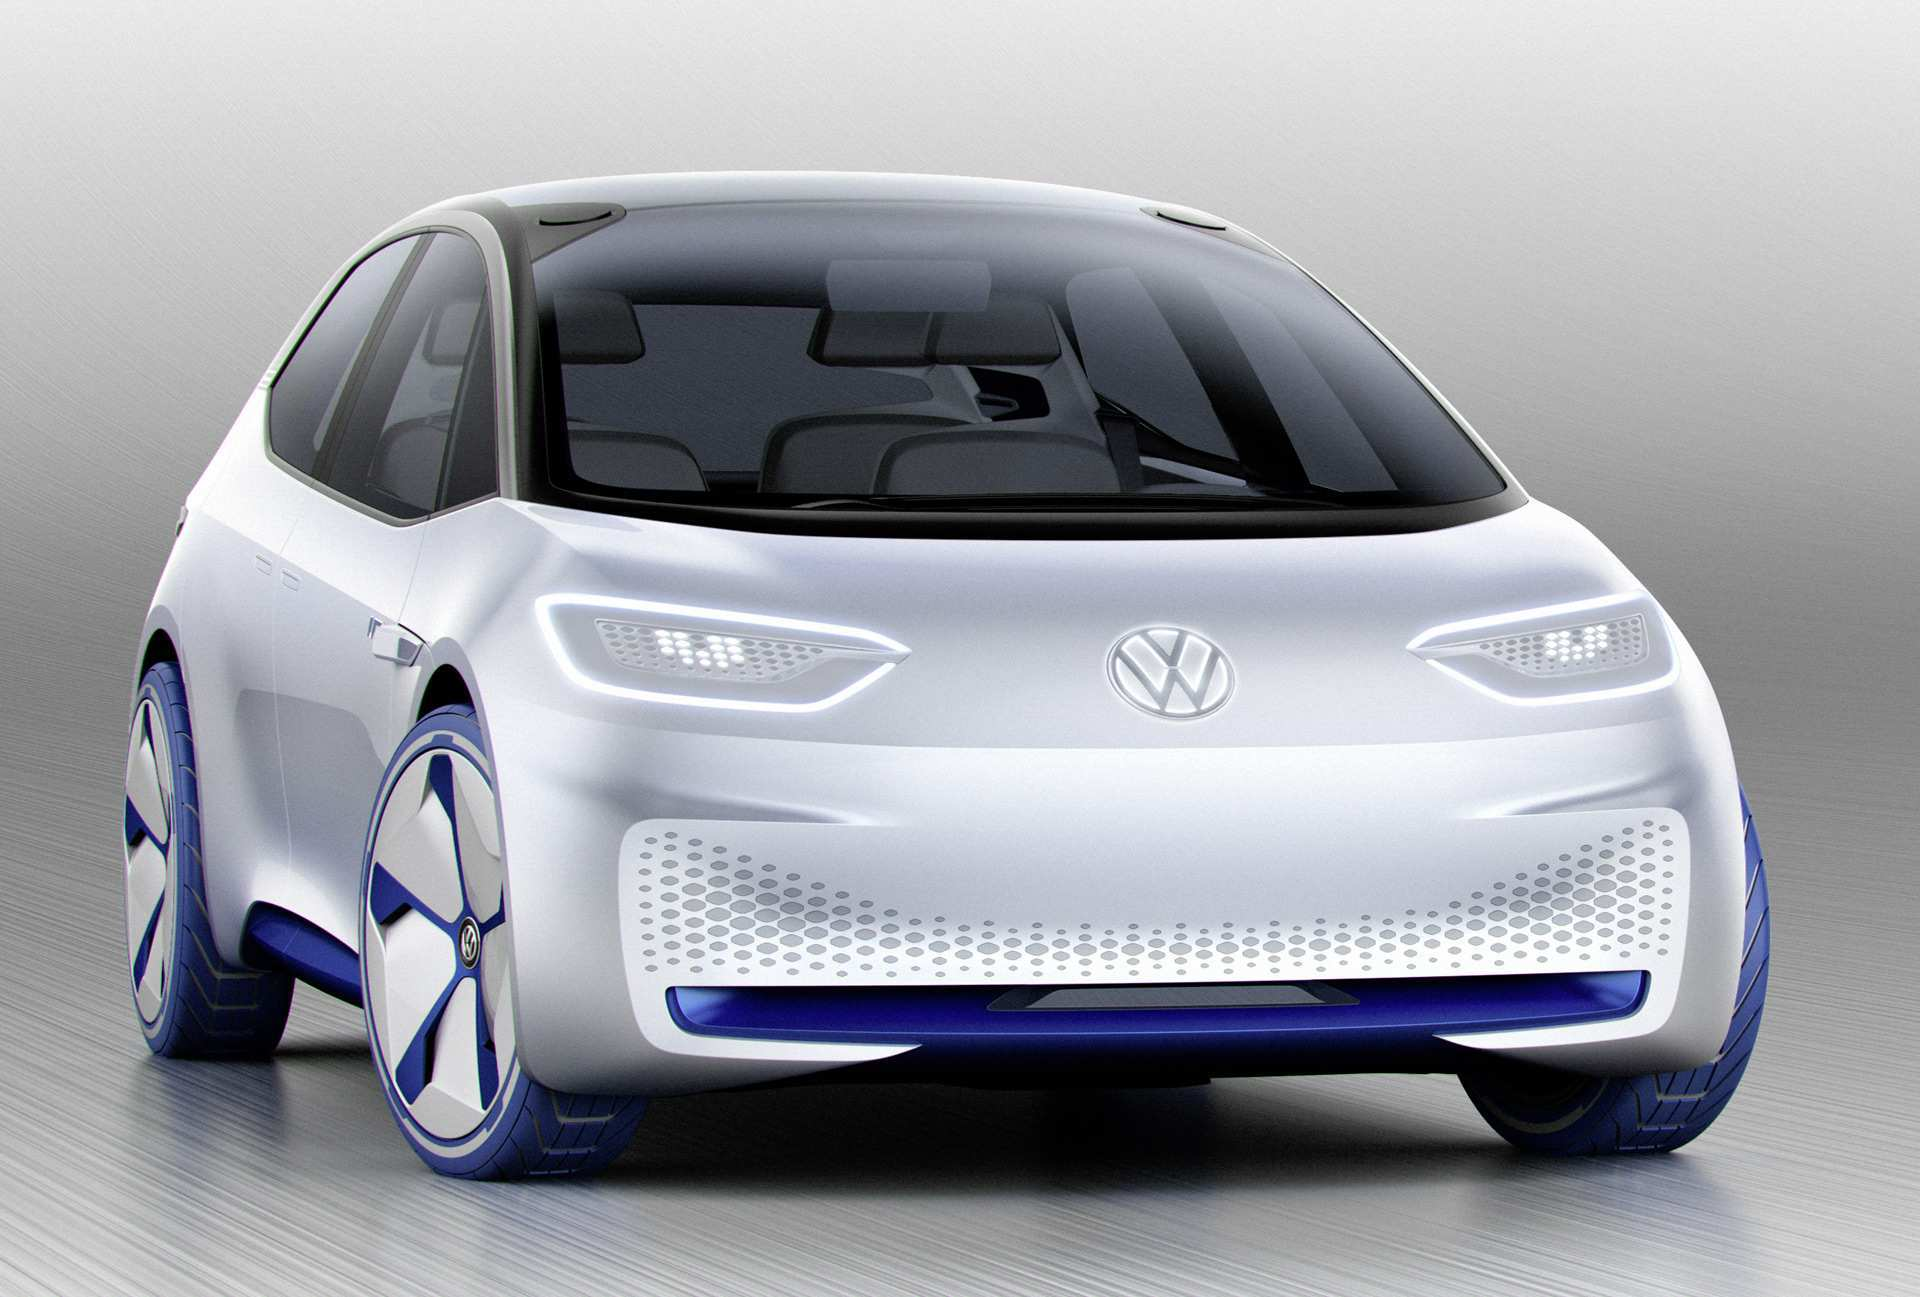 44 Great Volkswagen 2020 Electric Images for Volkswagen 2020 Electric